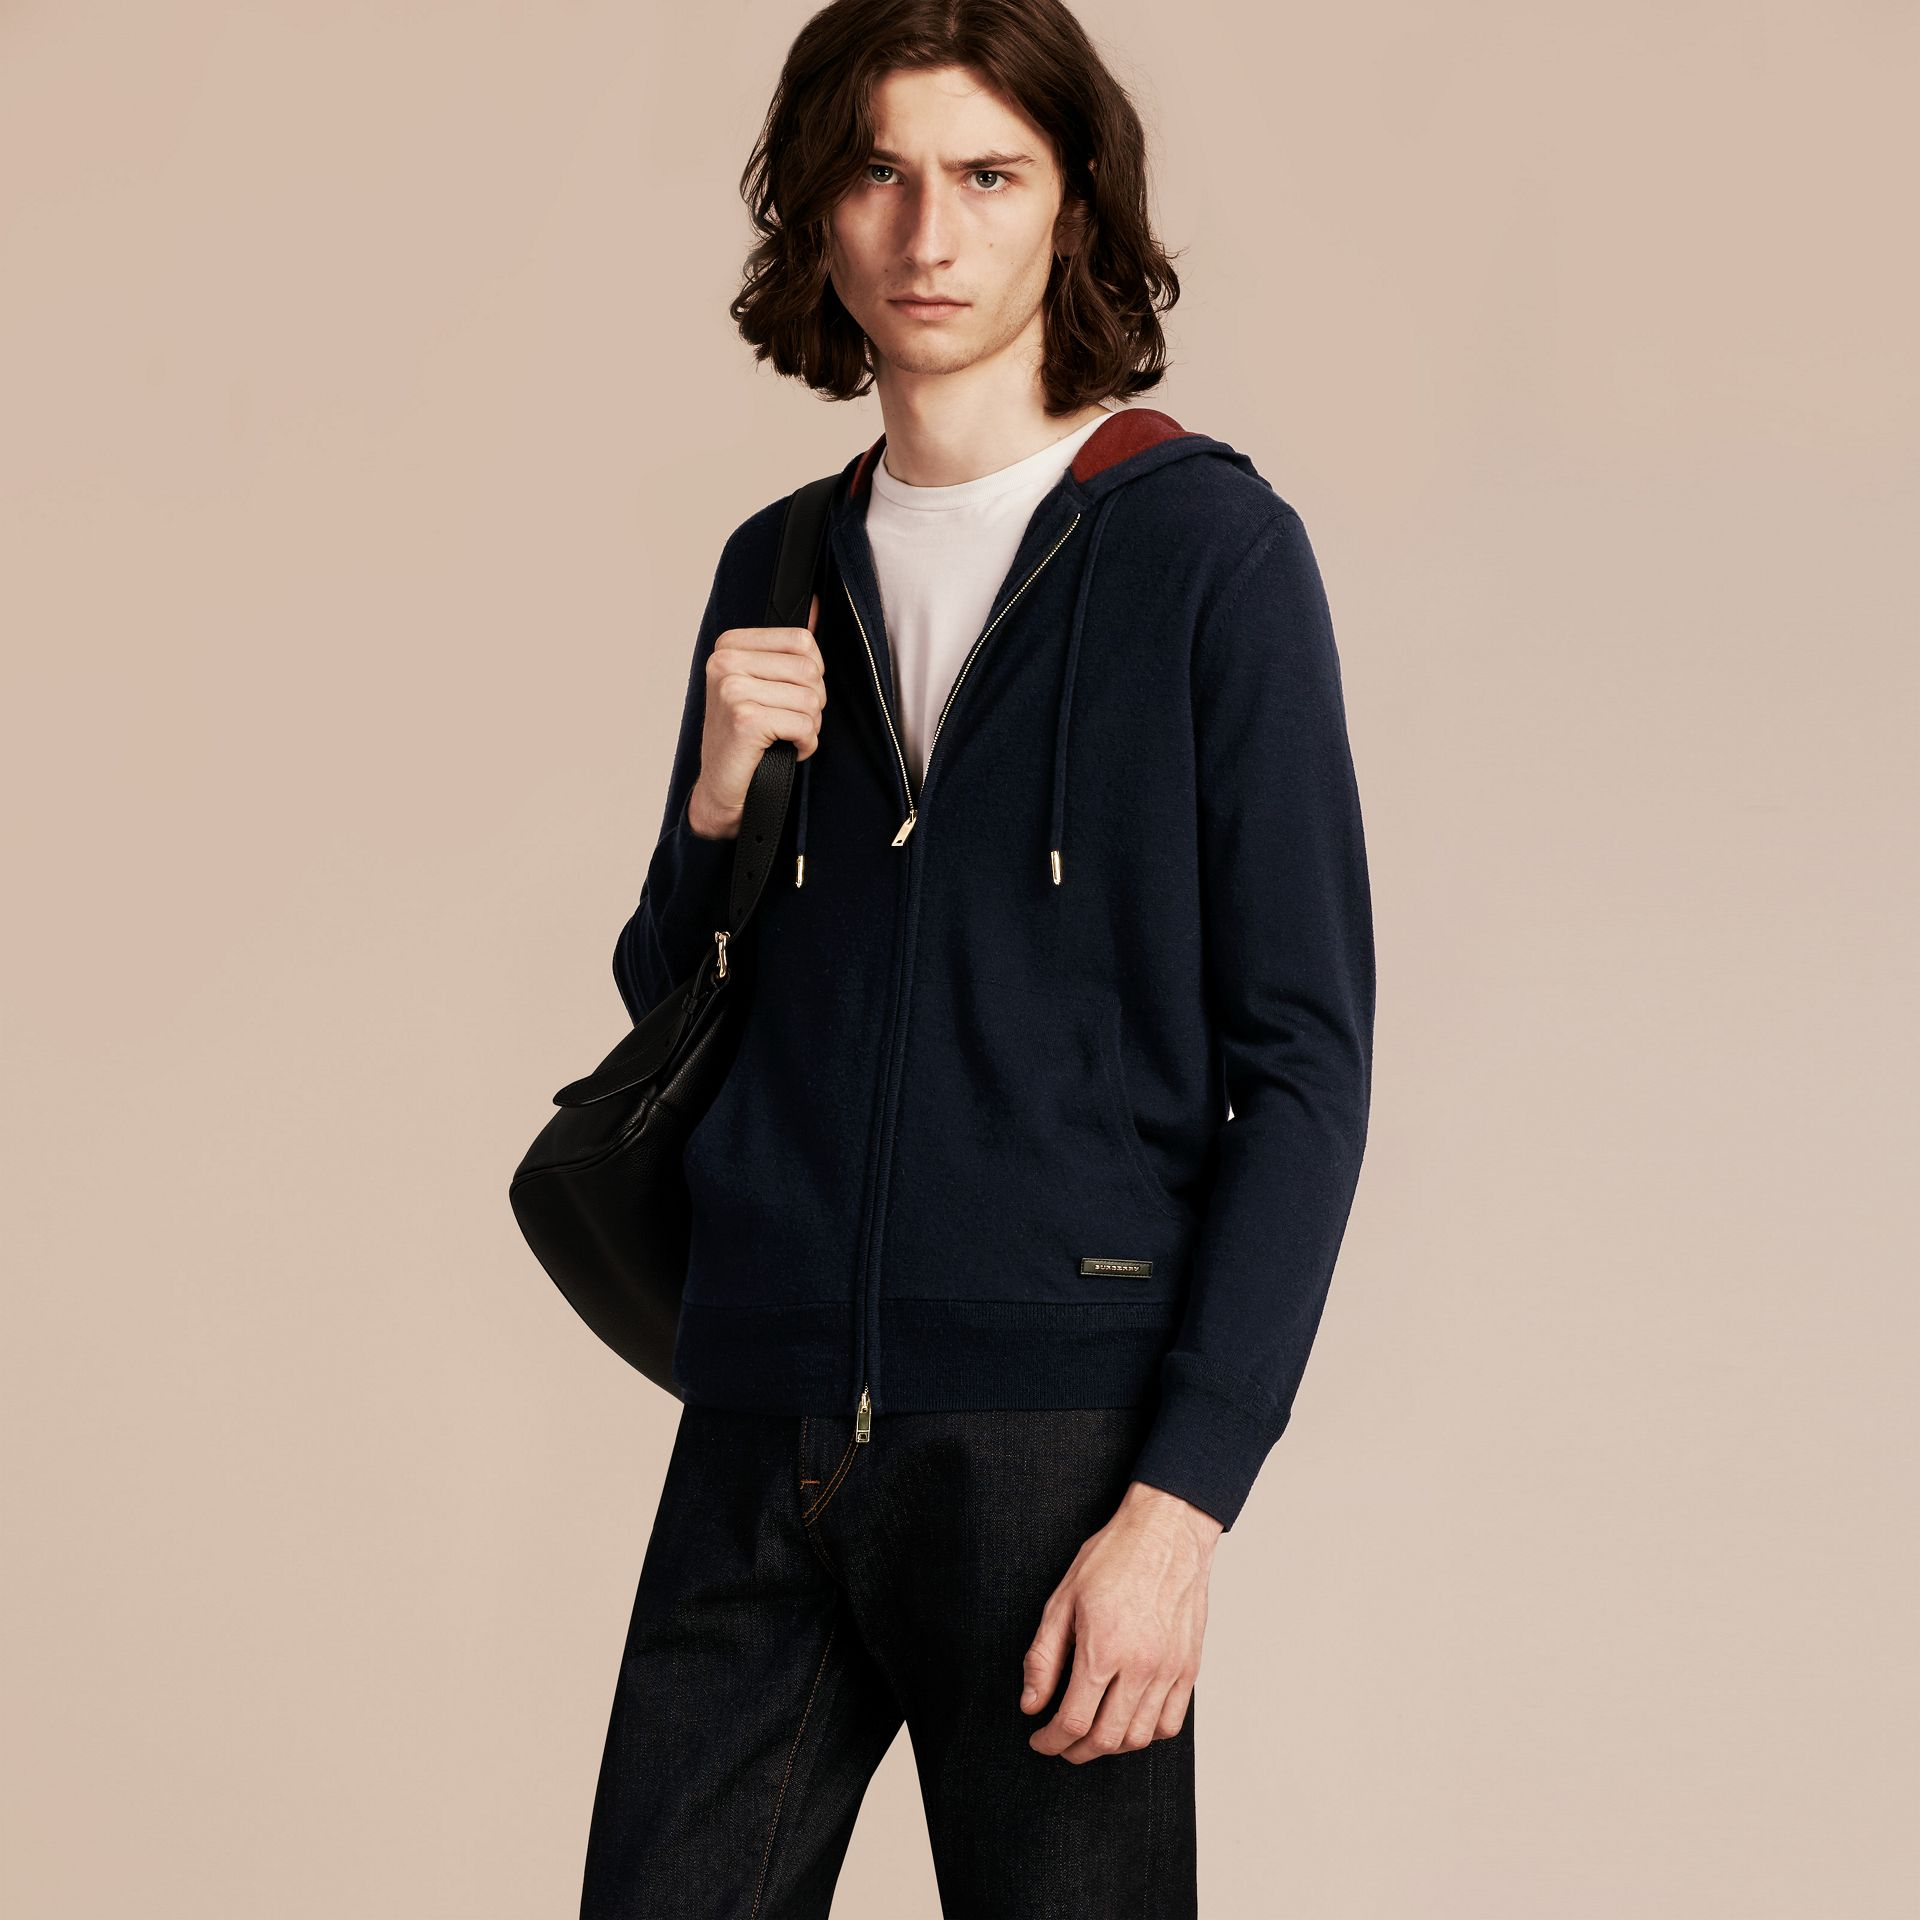 Navy Two-tone Cashmere Hooded Top - gallery image 1